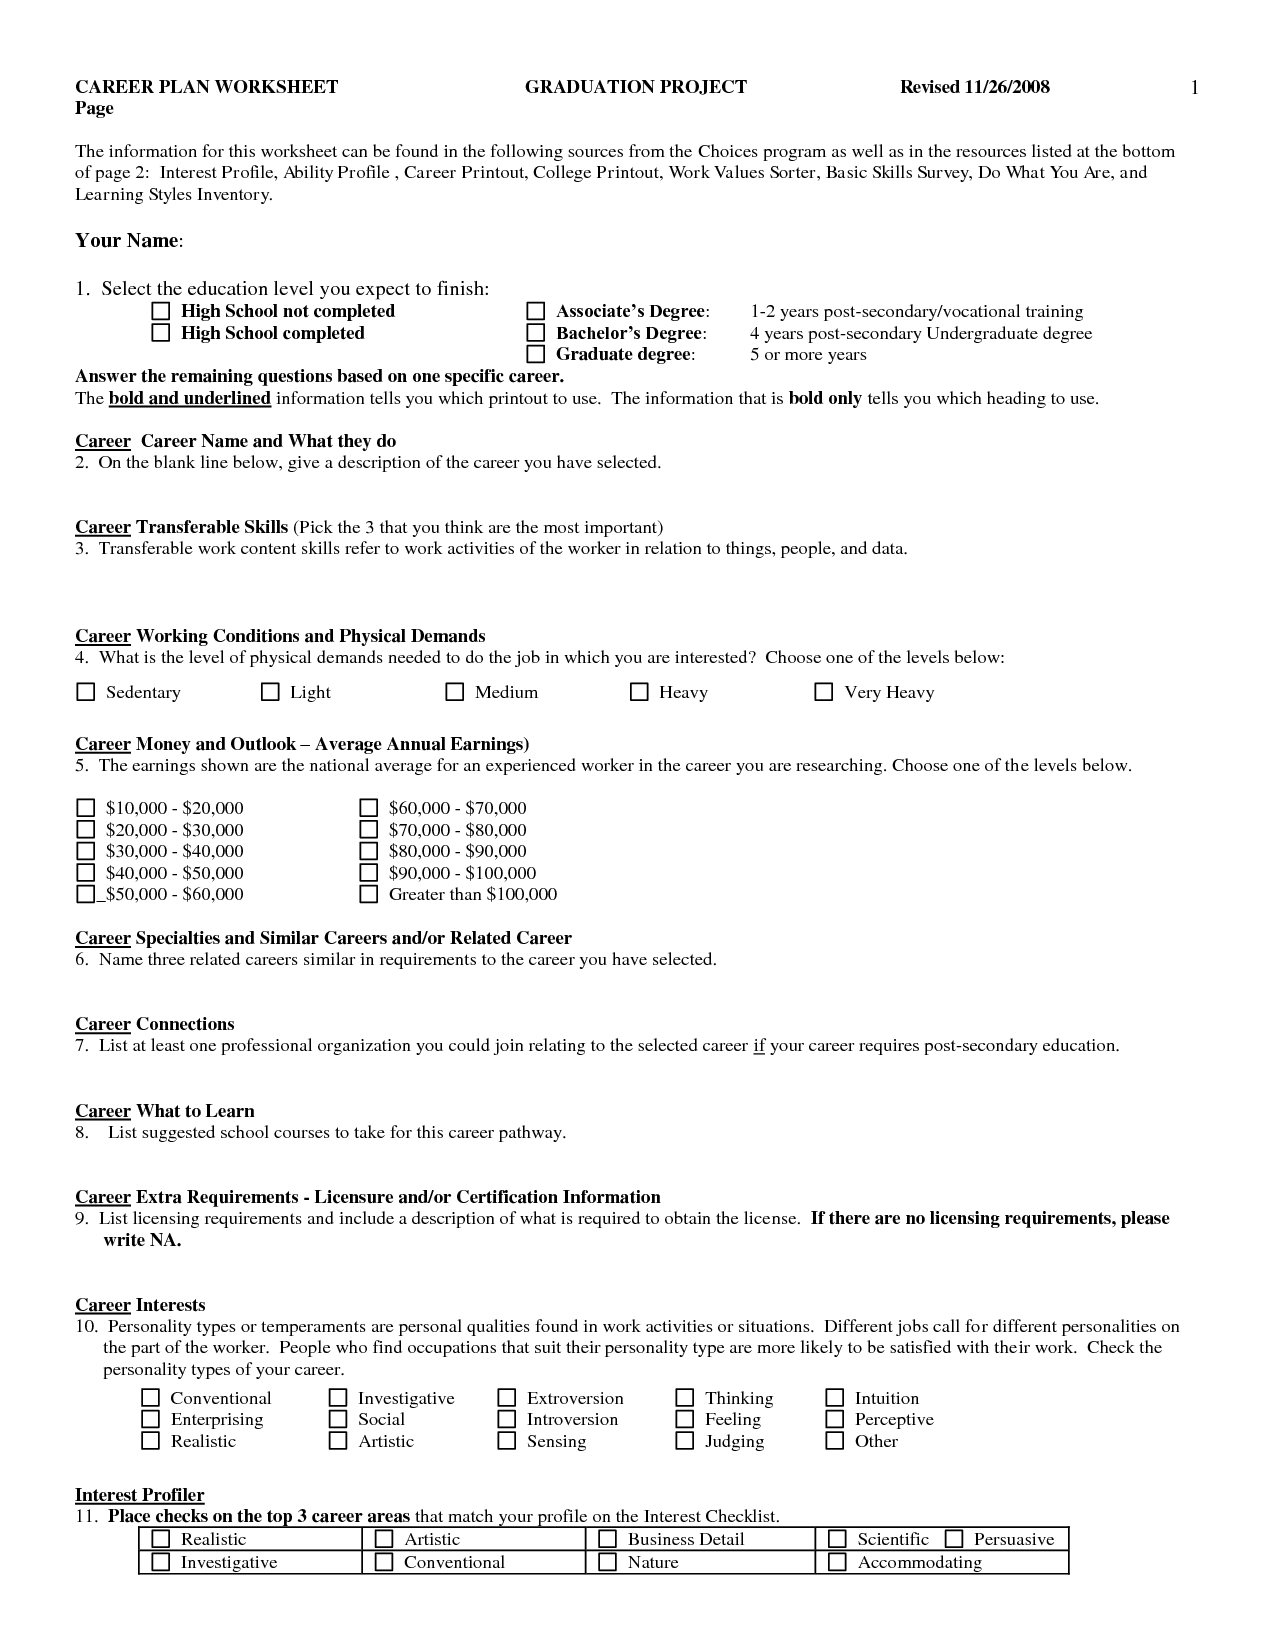 Worksheet Free Printable Geometry Worksheets For High School – Free Printable Math Worksheets for Highschool Students